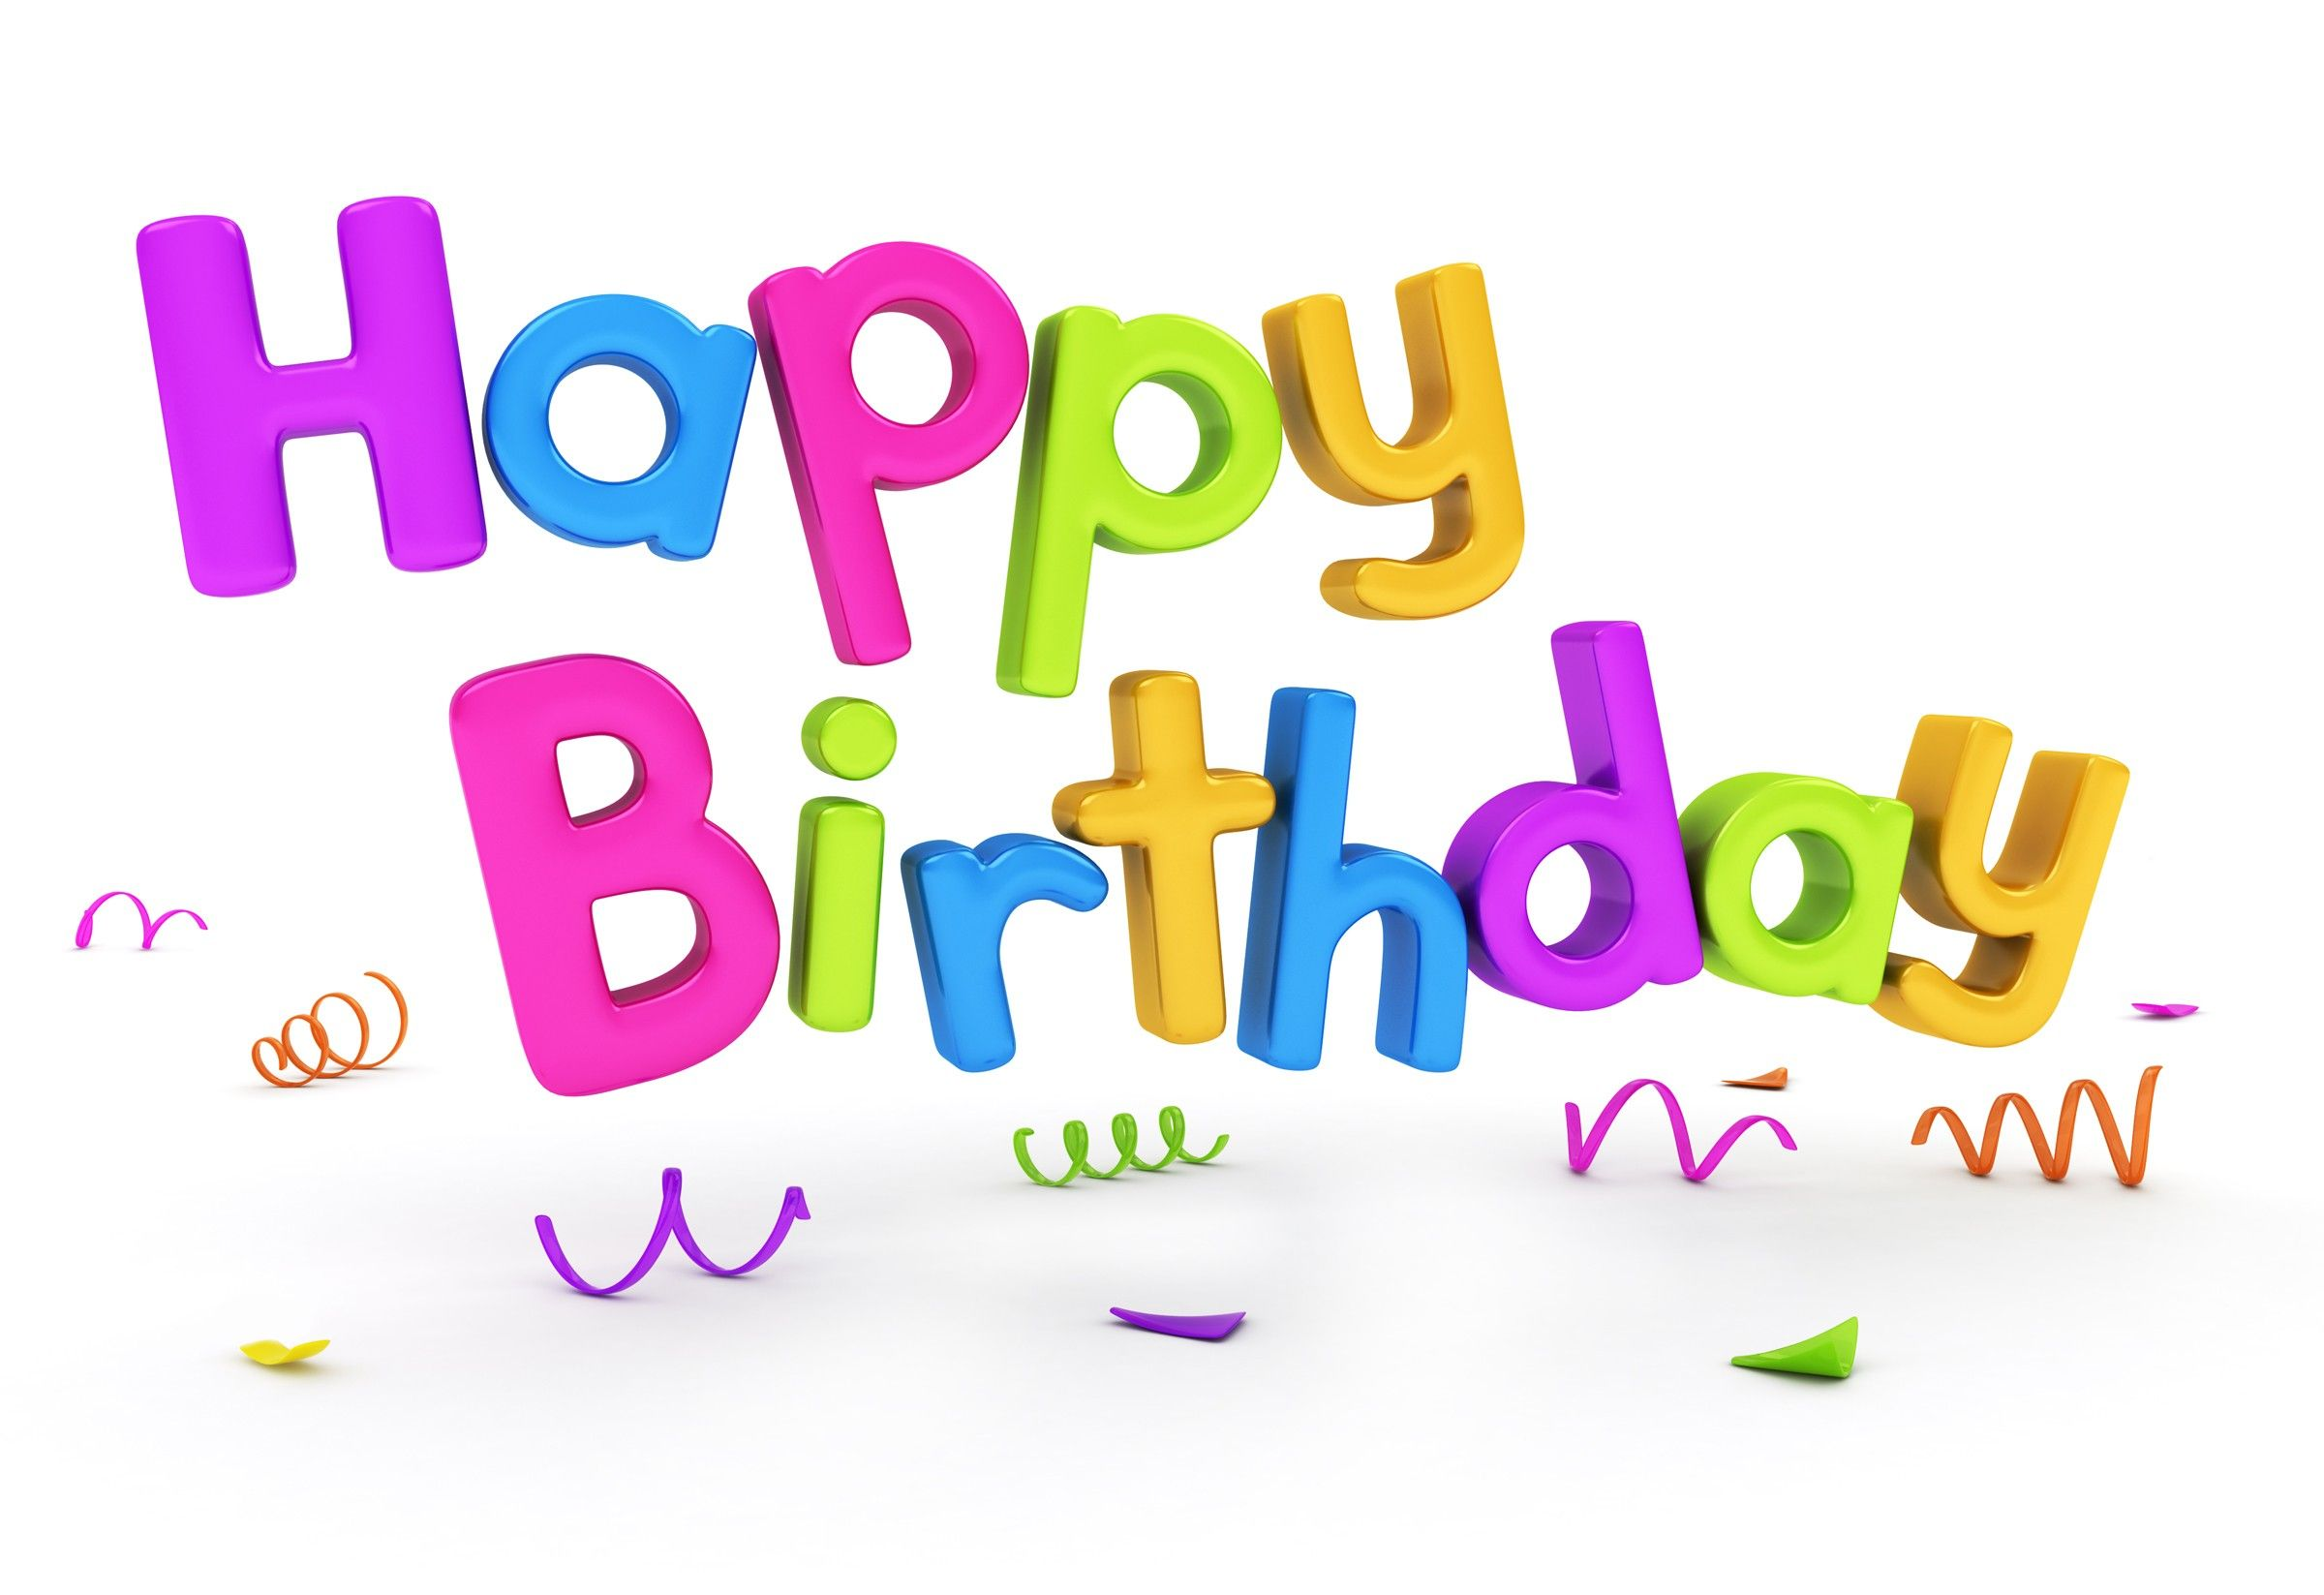 singing happy birthday text message ; 0d5d670779a90ee026bc653fea41f34a